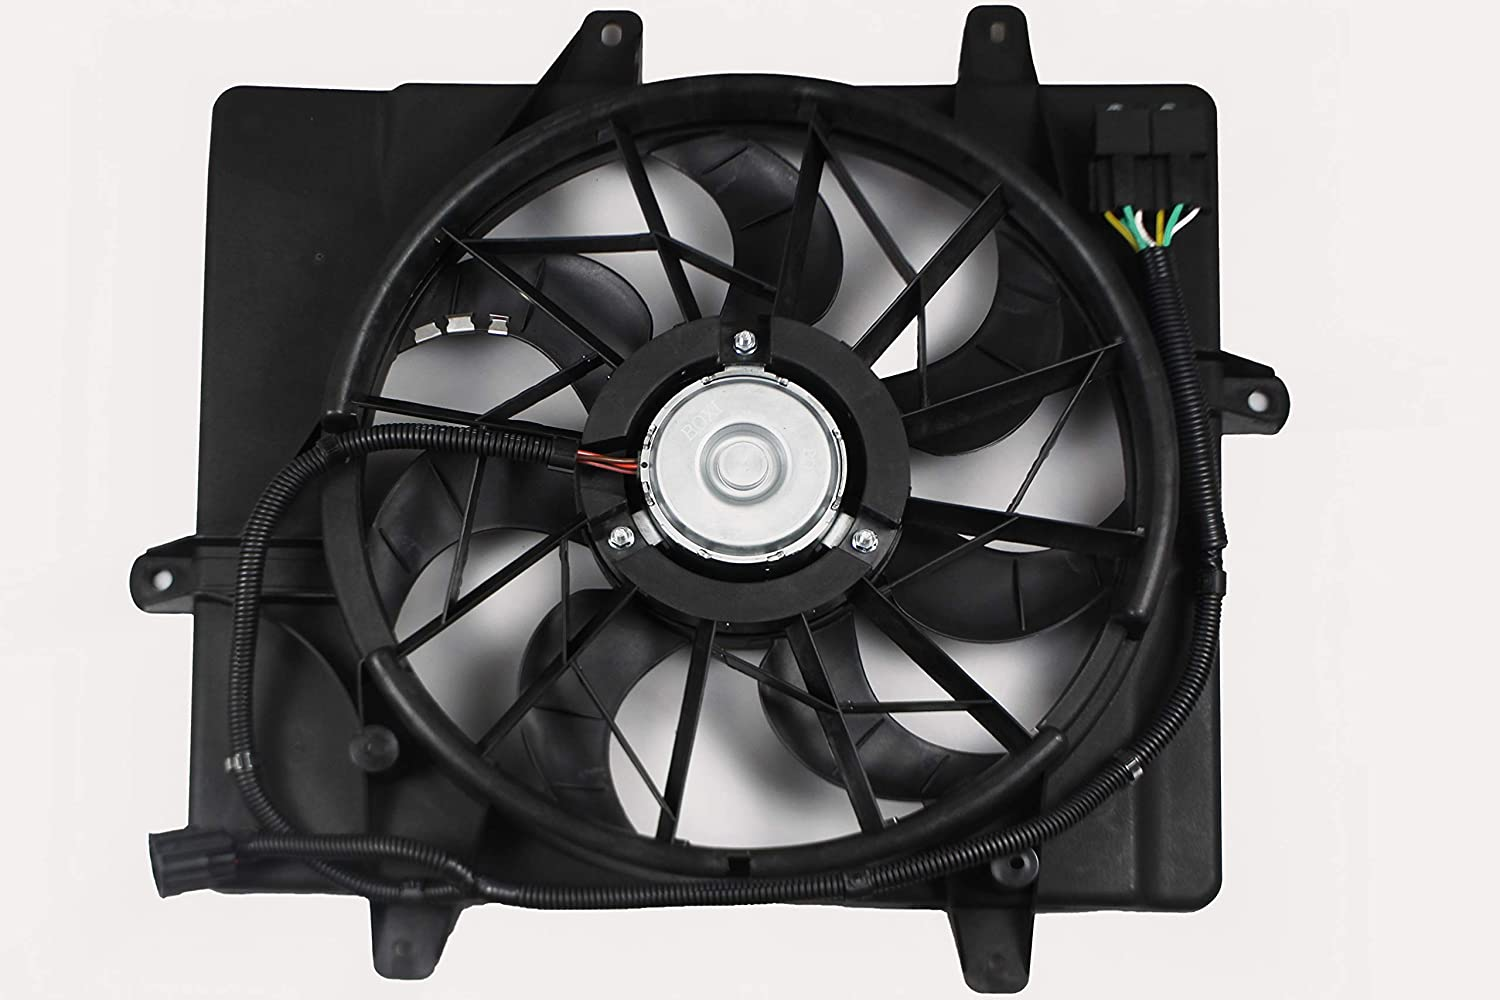 BOXI Radiator Cooling Fan Assembly For 2006 2007 2008 2009 2010 Chrysler PT Cruiser with 4-Pin Connector (excluding Turbo Models) 5179470AA